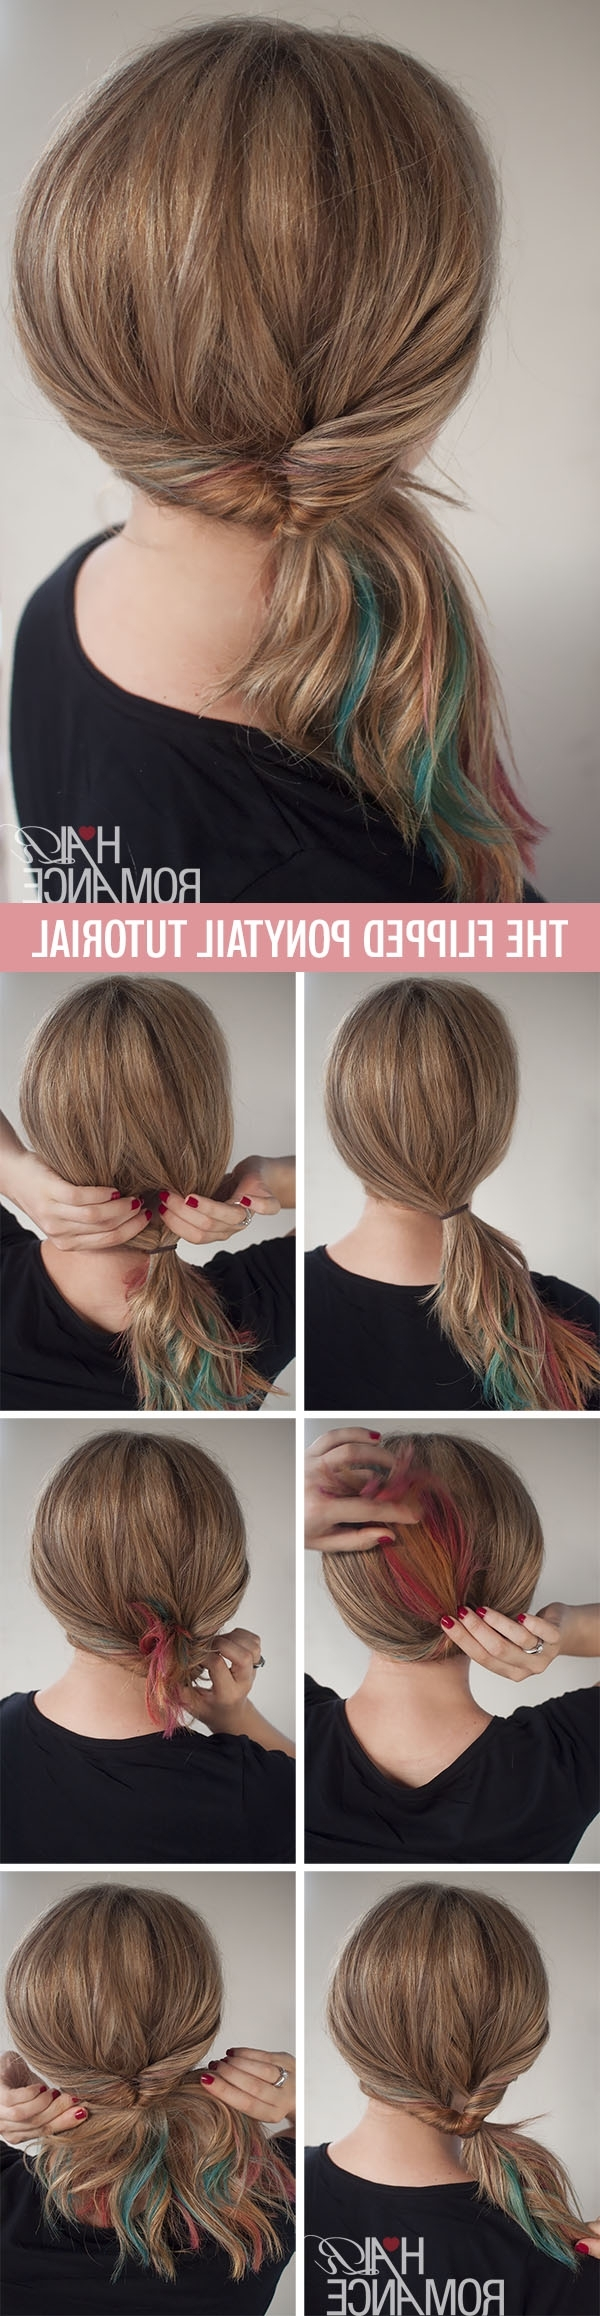 Get Cute Hair In Less Than 1 Minute – The Flipped Ponytail Hairstyle Intended For Newest Low Twisted Flip In Ponytail Hairstyles (View 10 of 20)